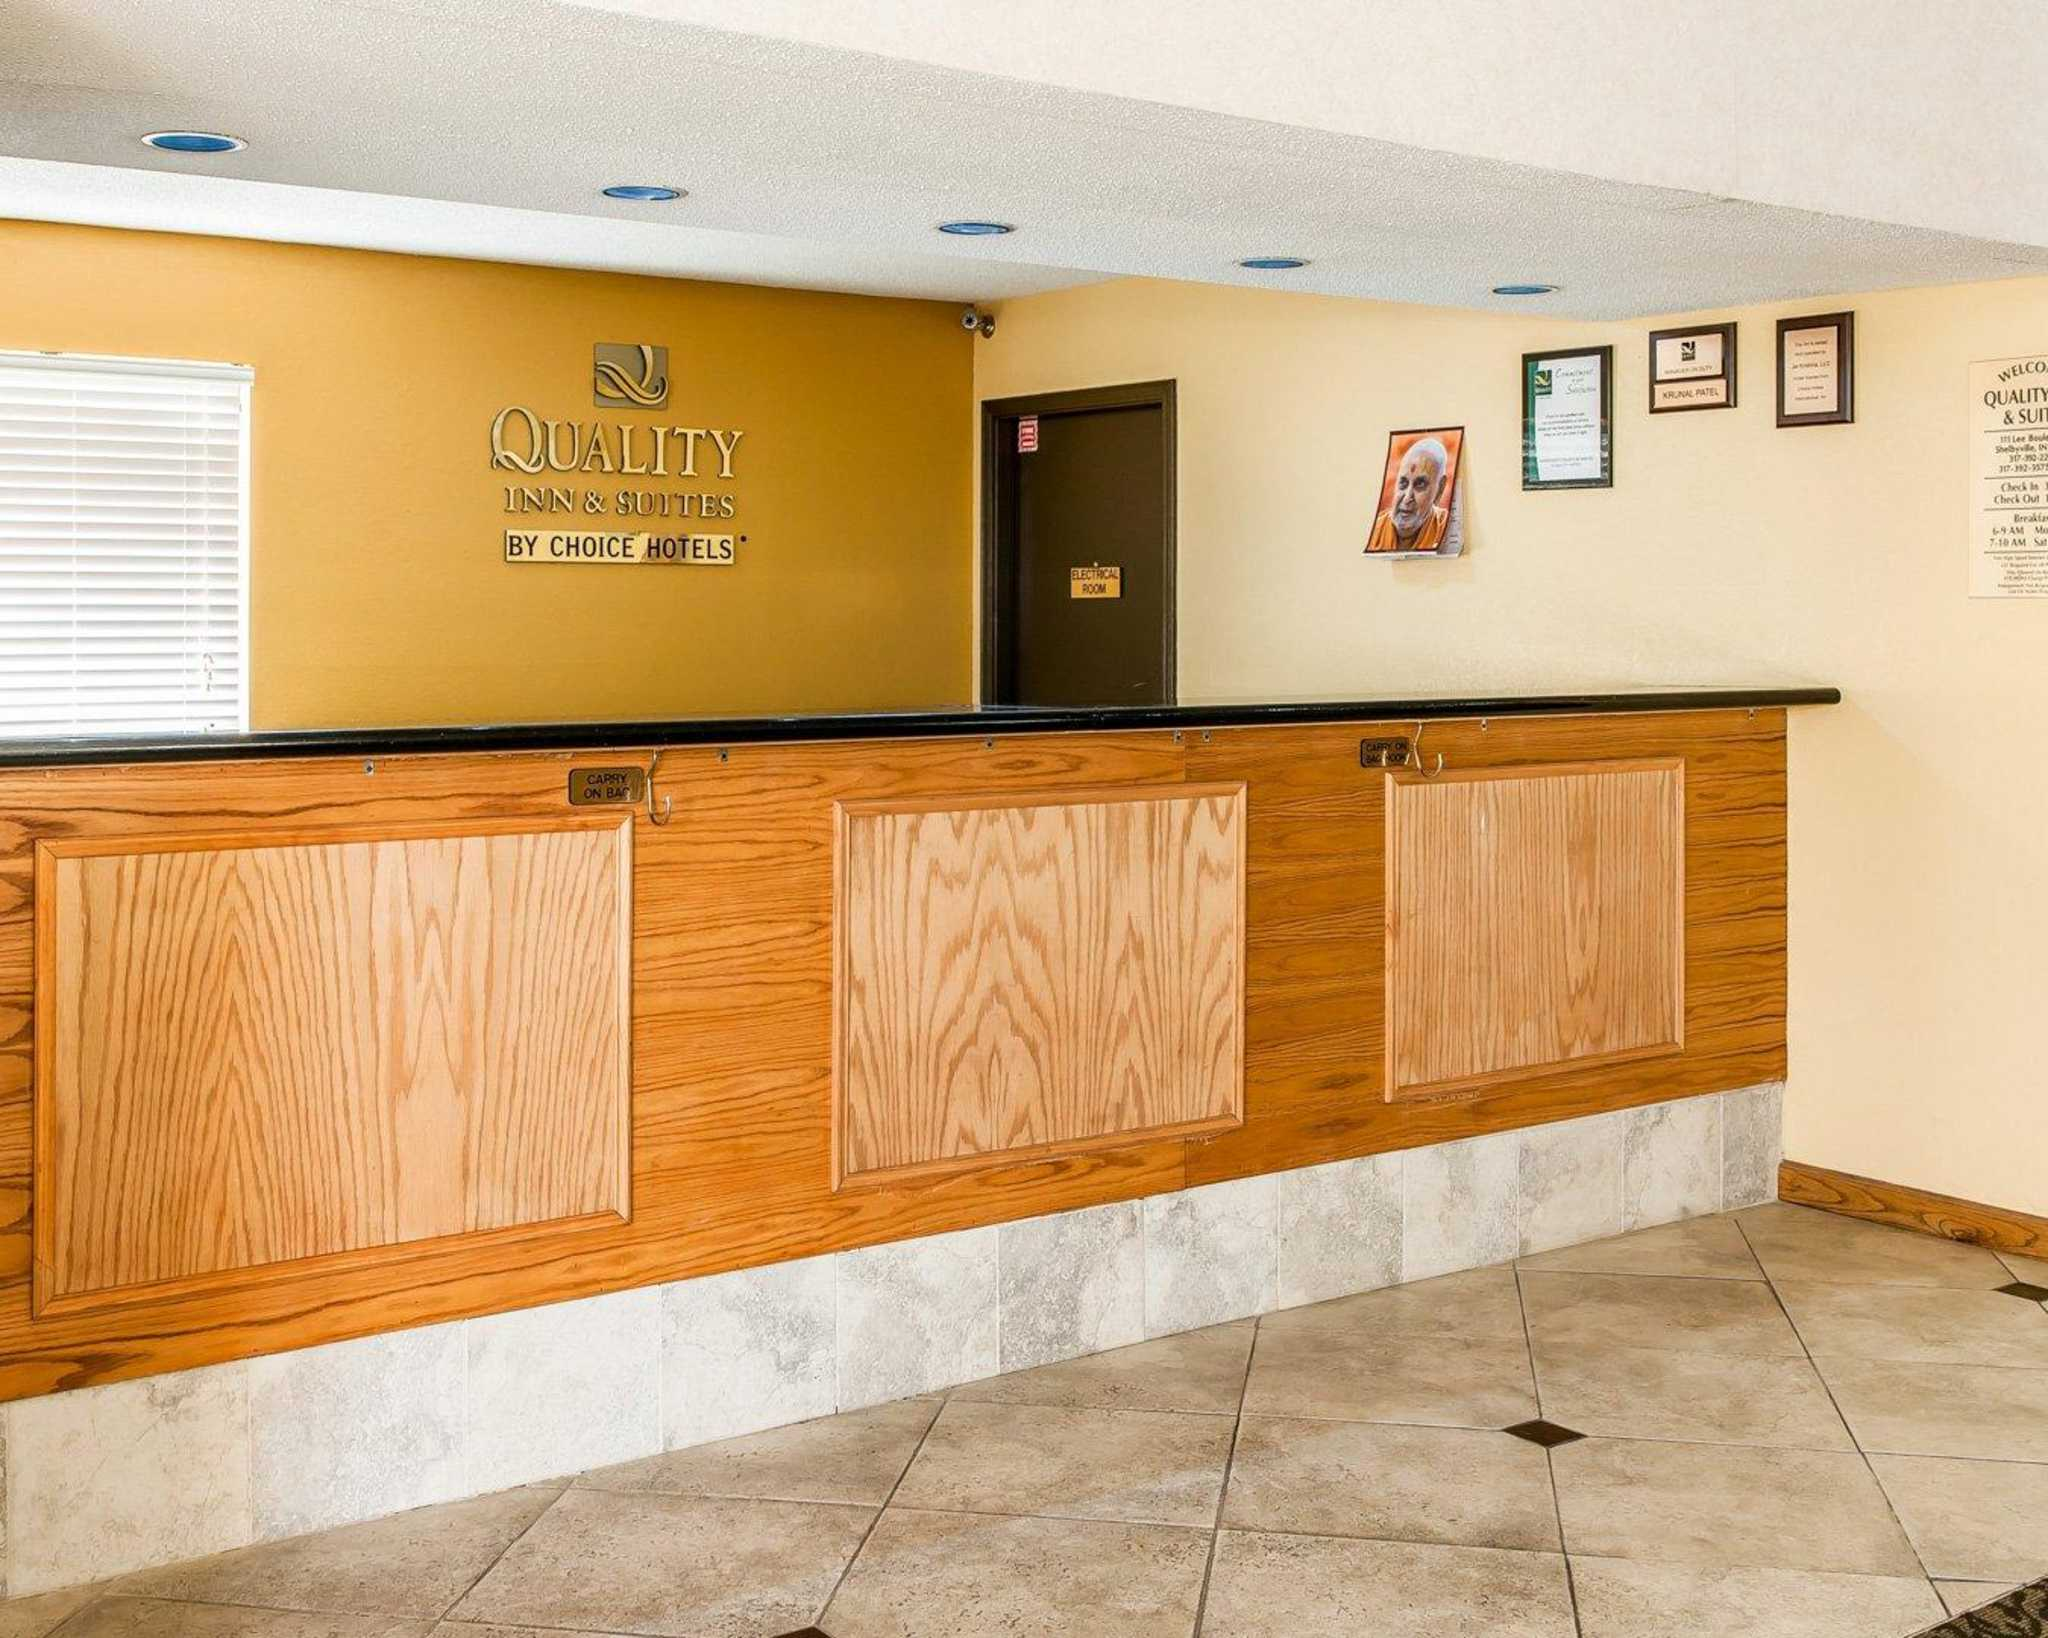 Quality Inn & Suites Shelbyville I-74 image 14